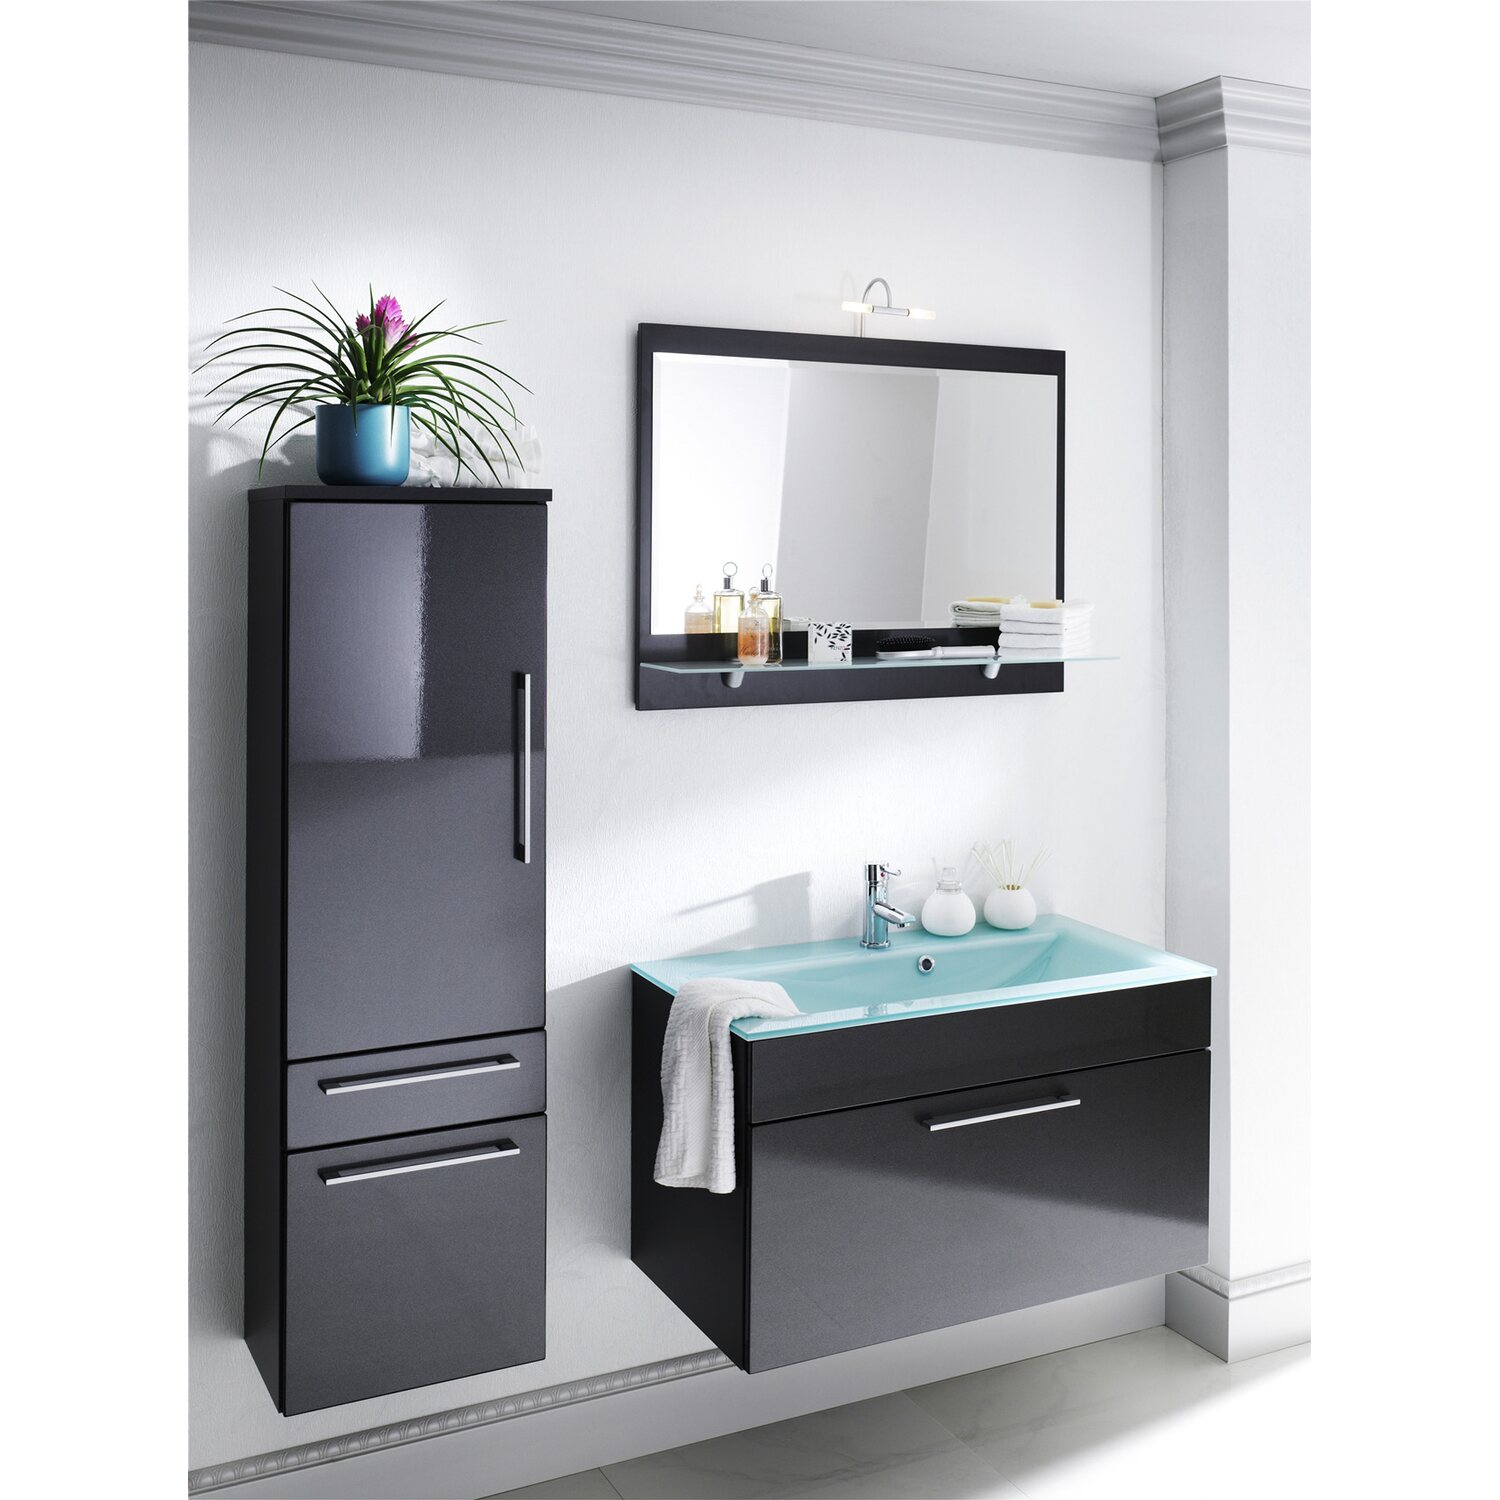 posseik waschplatz 90 cm heron anthrazit mit glasbecken. Black Bedroom Furniture Sets. Home Design Ideas